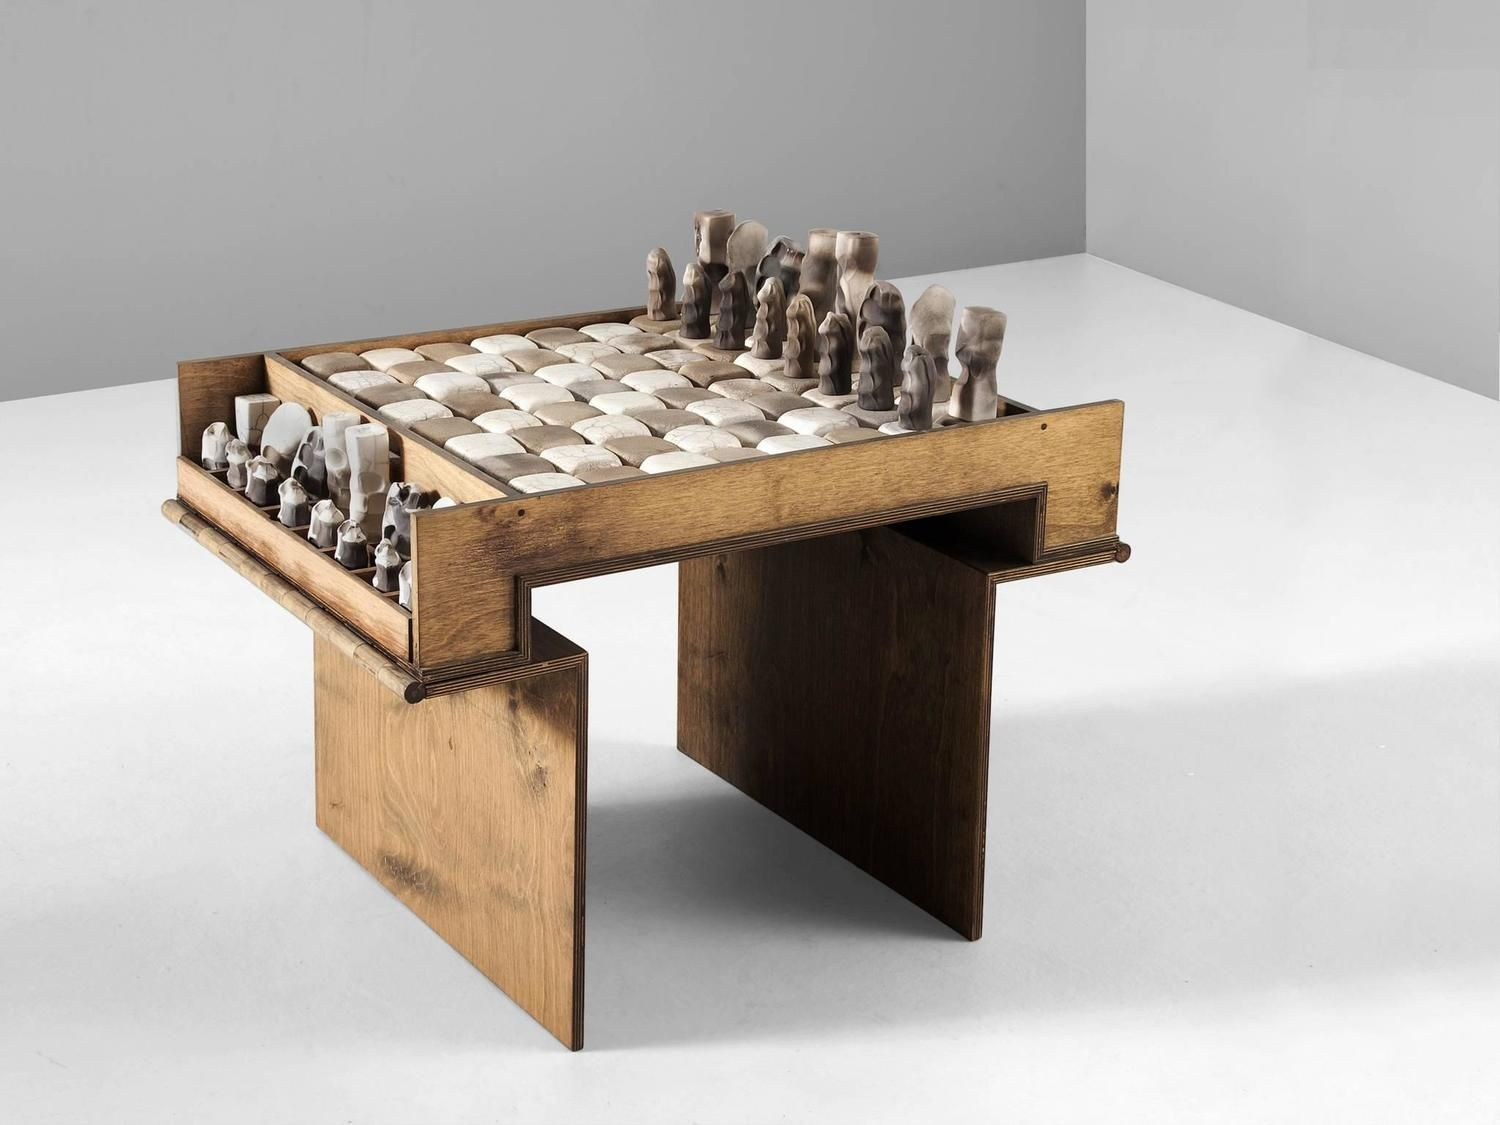 Exceptional Ceramic Chess Set and Table 2